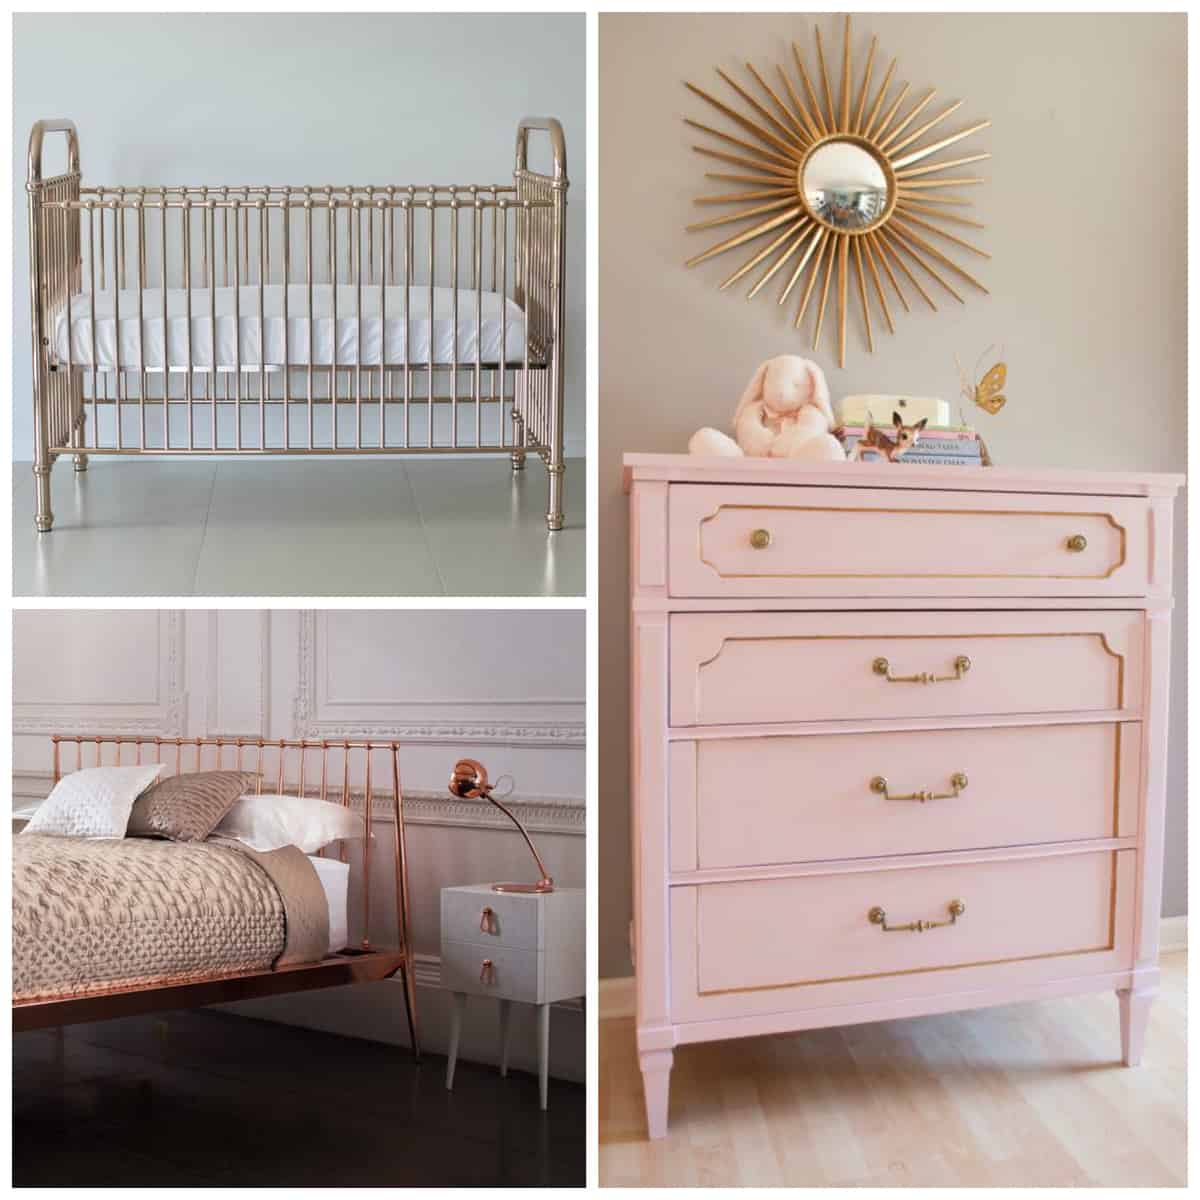 Everything s coming up rose gold pretty prudent for Bedroom ideas rose gold